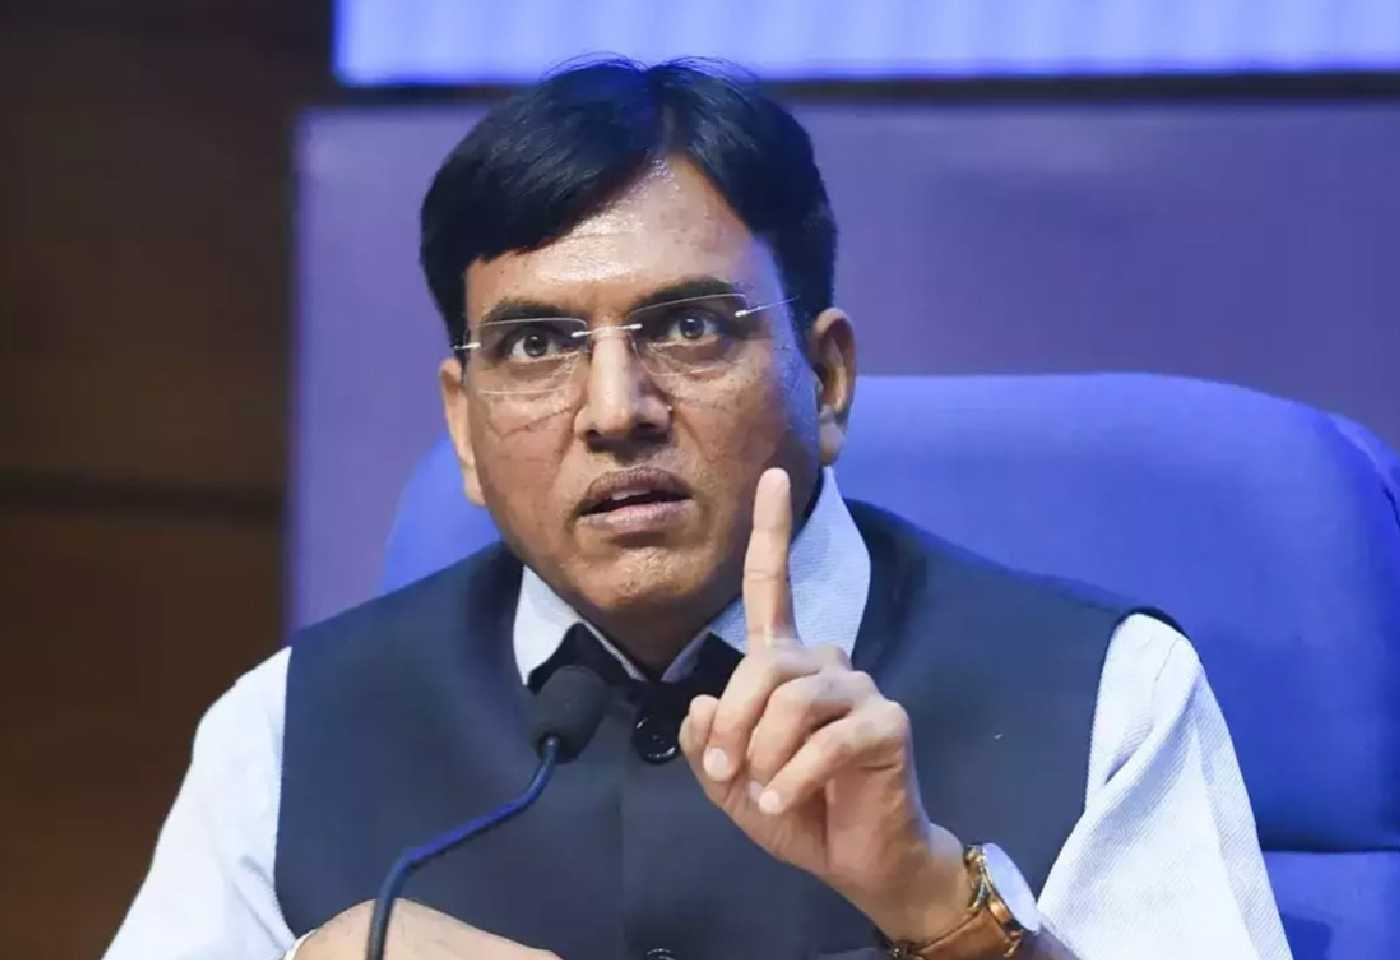 Free Vaccine For Everyone In 24 Days The Figure Reached 30 To 40 Crores, Minister Mandaviya Tweeted